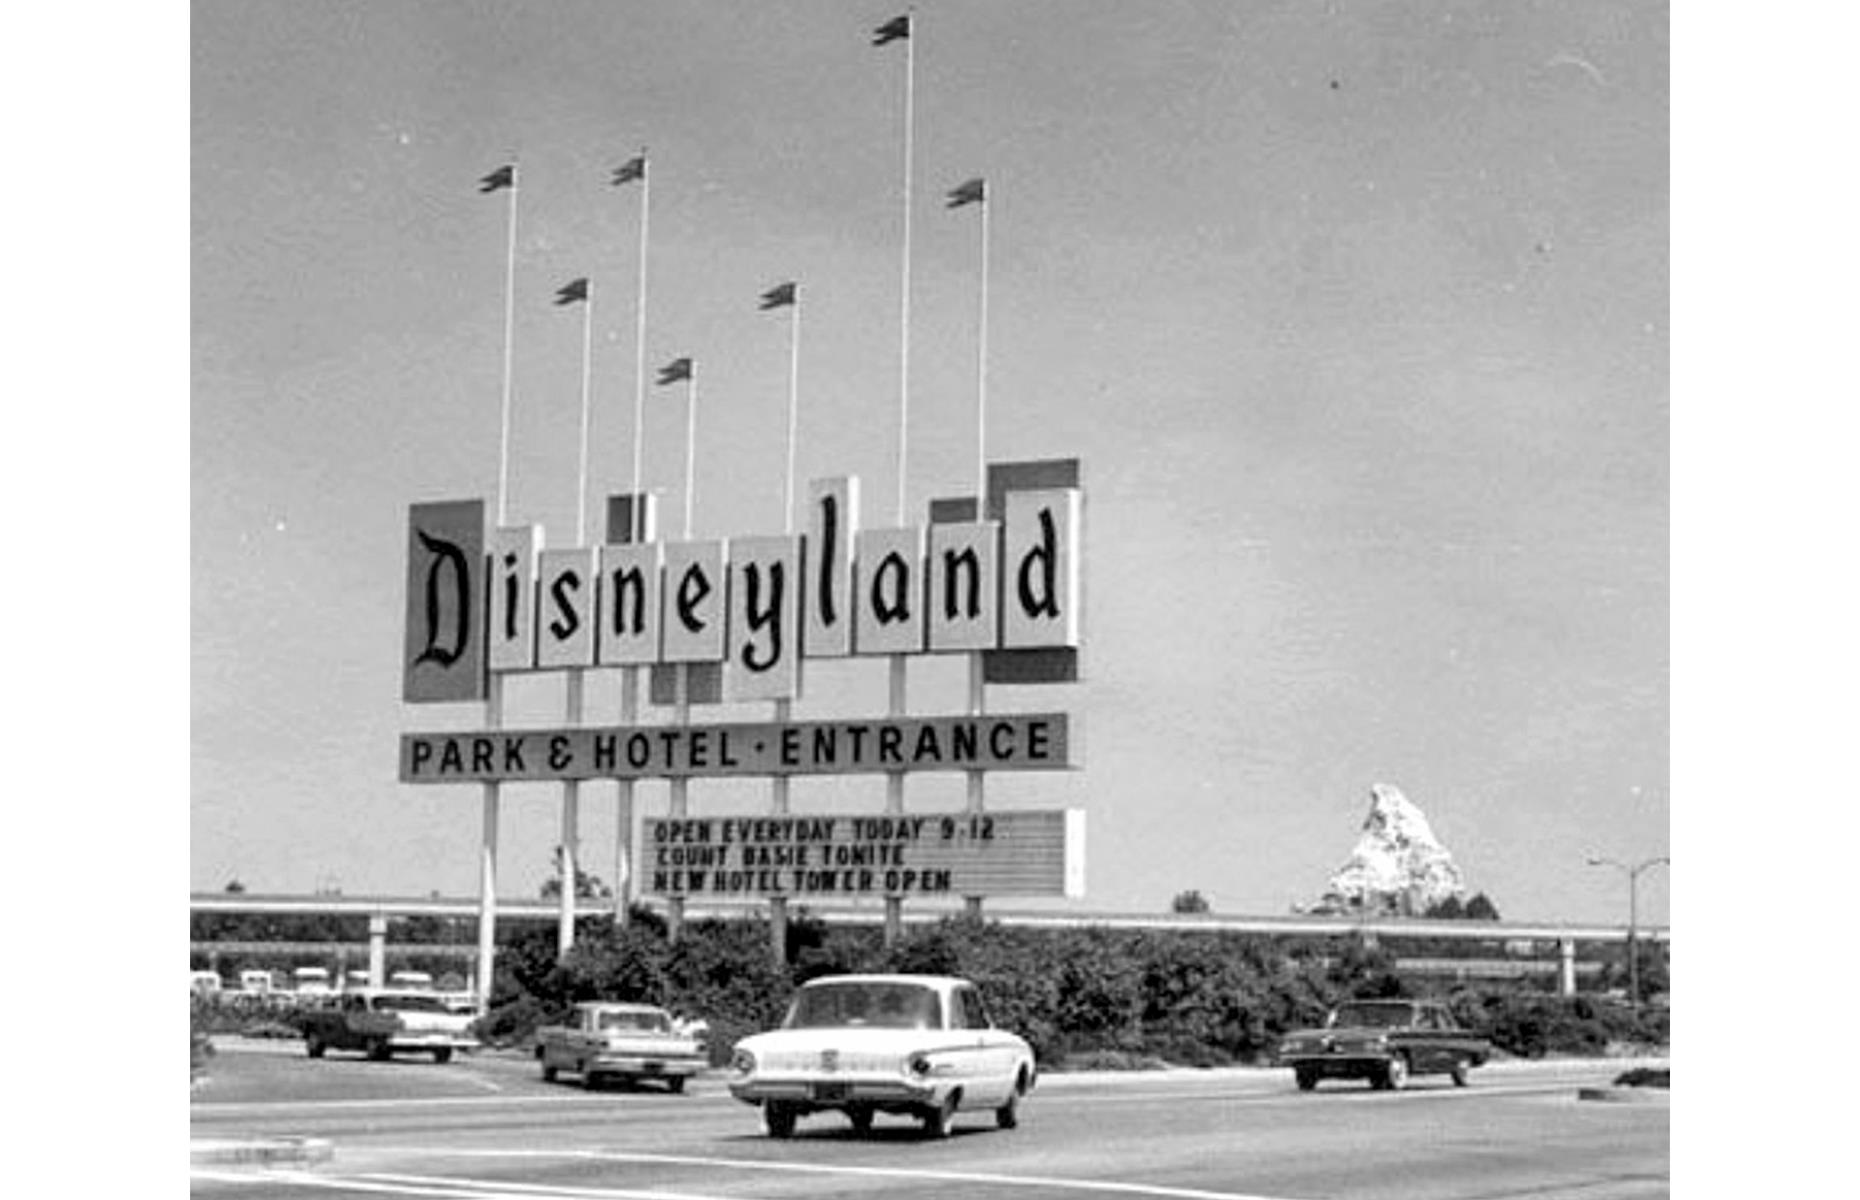 Slide 11 of 38: This sign, erected in 1958, would become synonymous with California's Disneyland, proudly greeting guests as they entered the park. After more than three decades on display, the classic sign was finally replaced with an electronic version in 1989. Today it remains a nostalgic symbol of the park's early days.